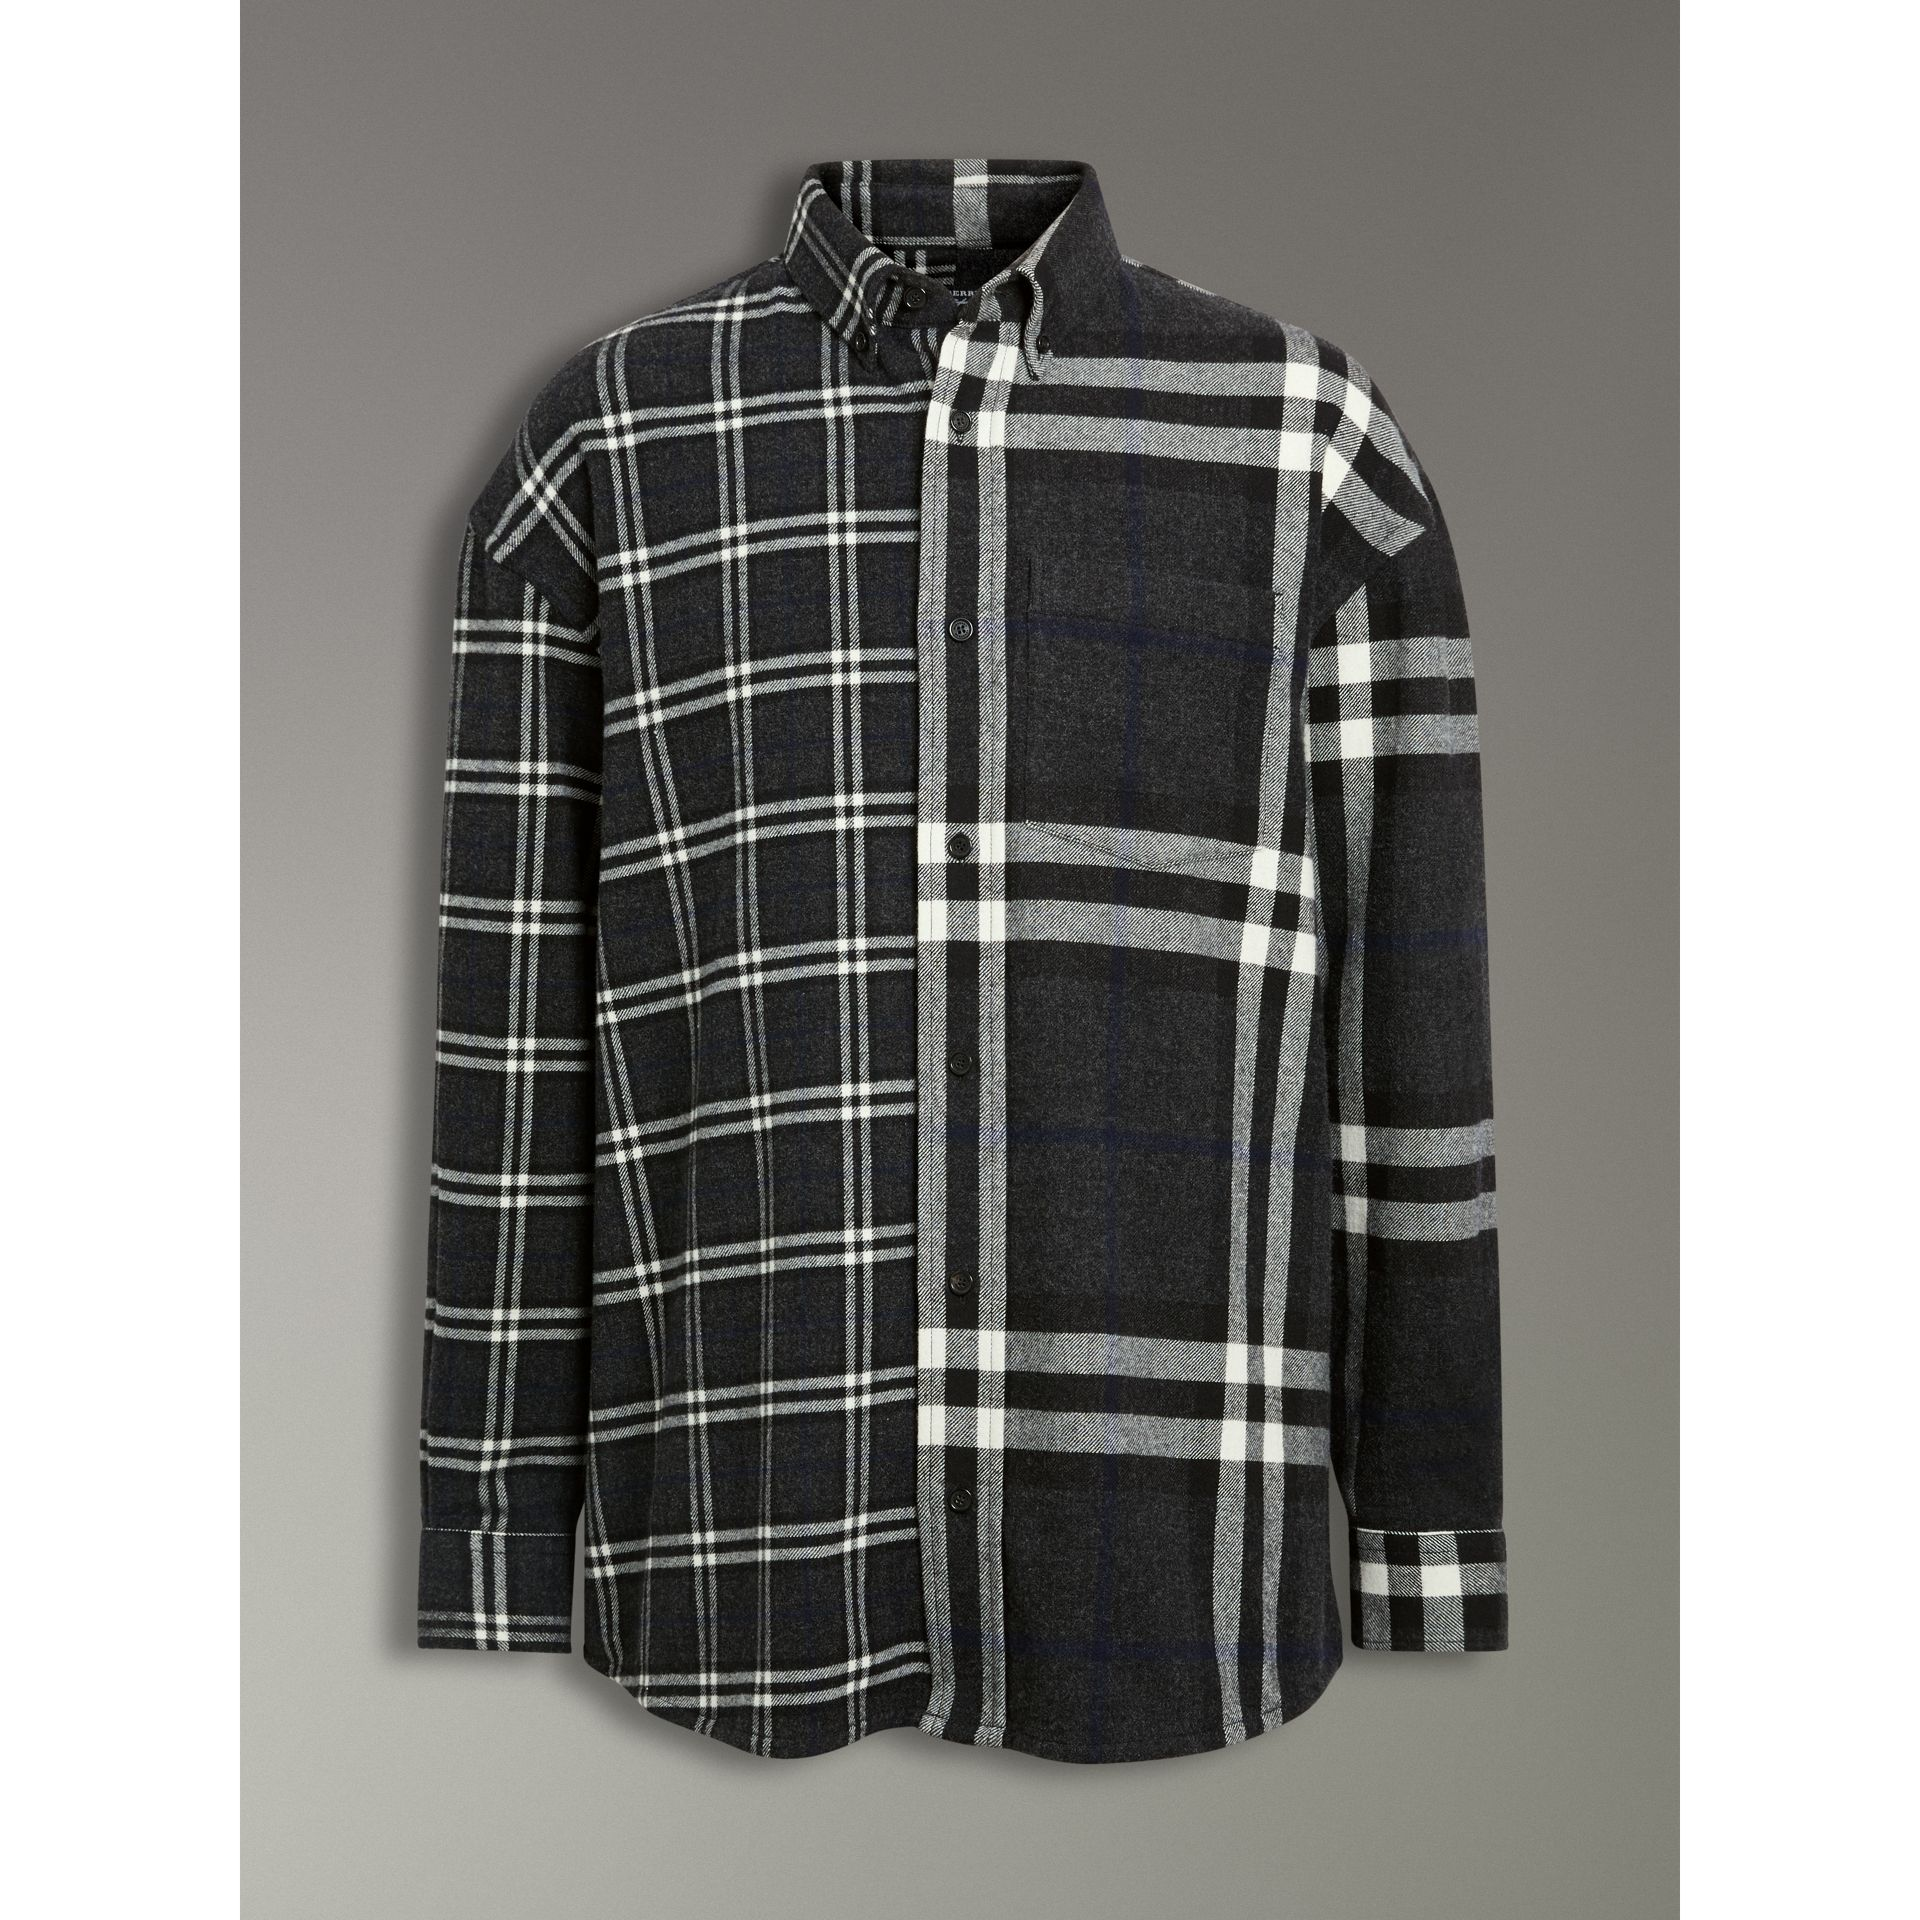 Gosha x Burberry Check Flannel Shirt in Charcoal | Burberry United States - gallery image 3